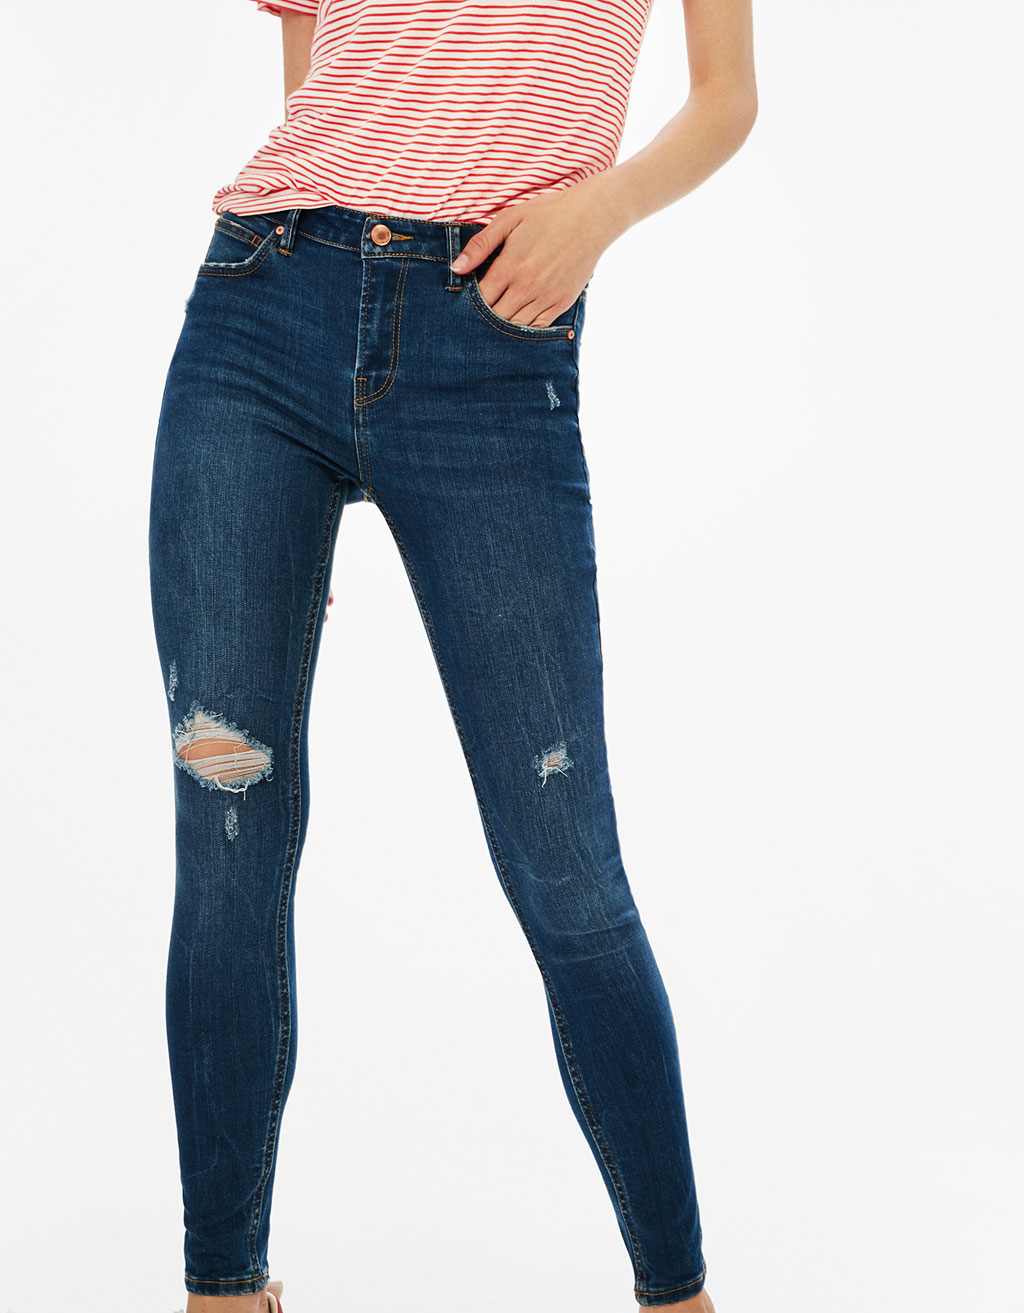 Skinny jeans with five pockets